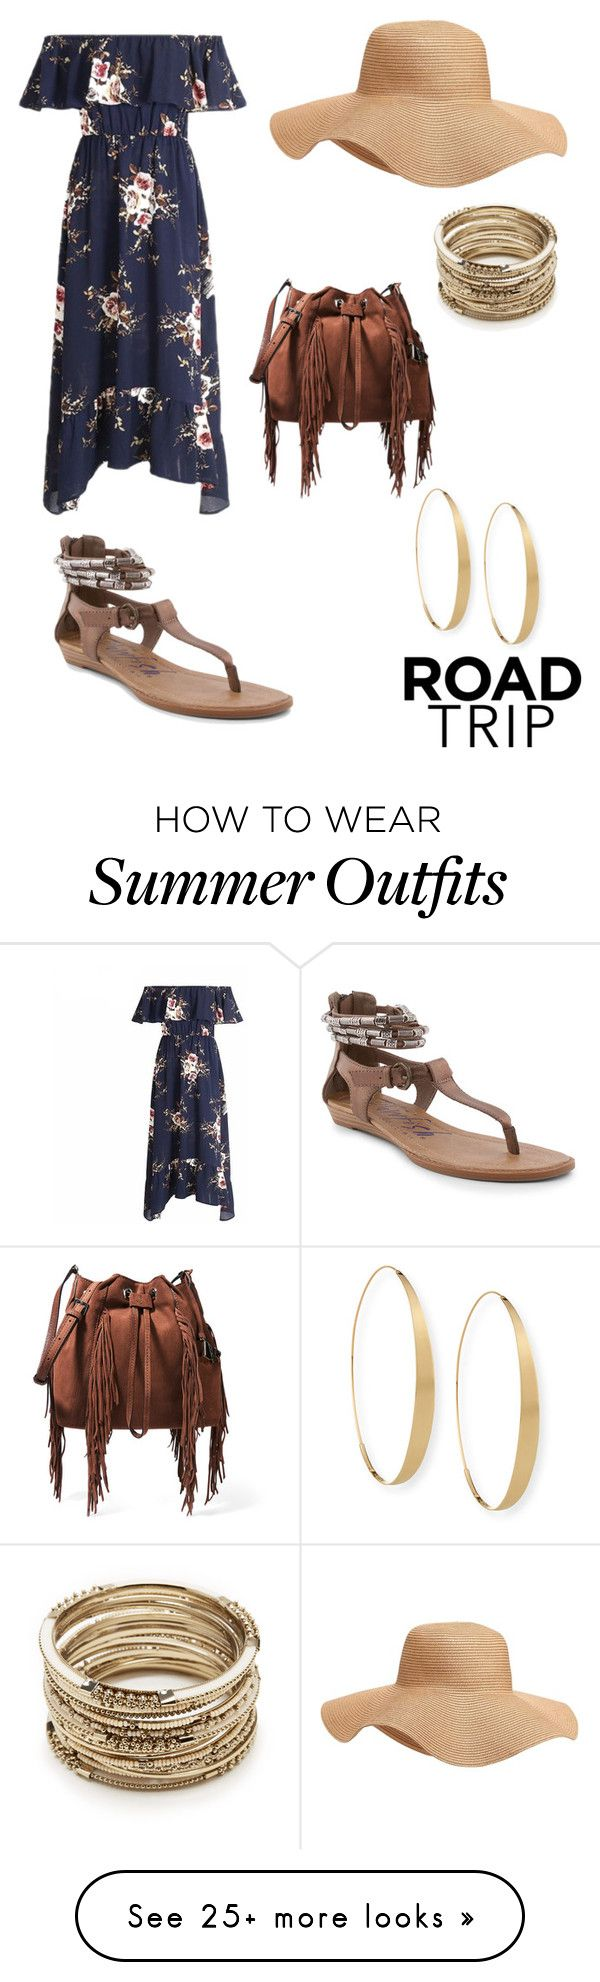 """""""RoadTrip Outfit"""" by jmacbeth129 on Polyvore featuring Diane Von Furstenberg, Blowfish, Old Navy, Sole Society and Lana"""